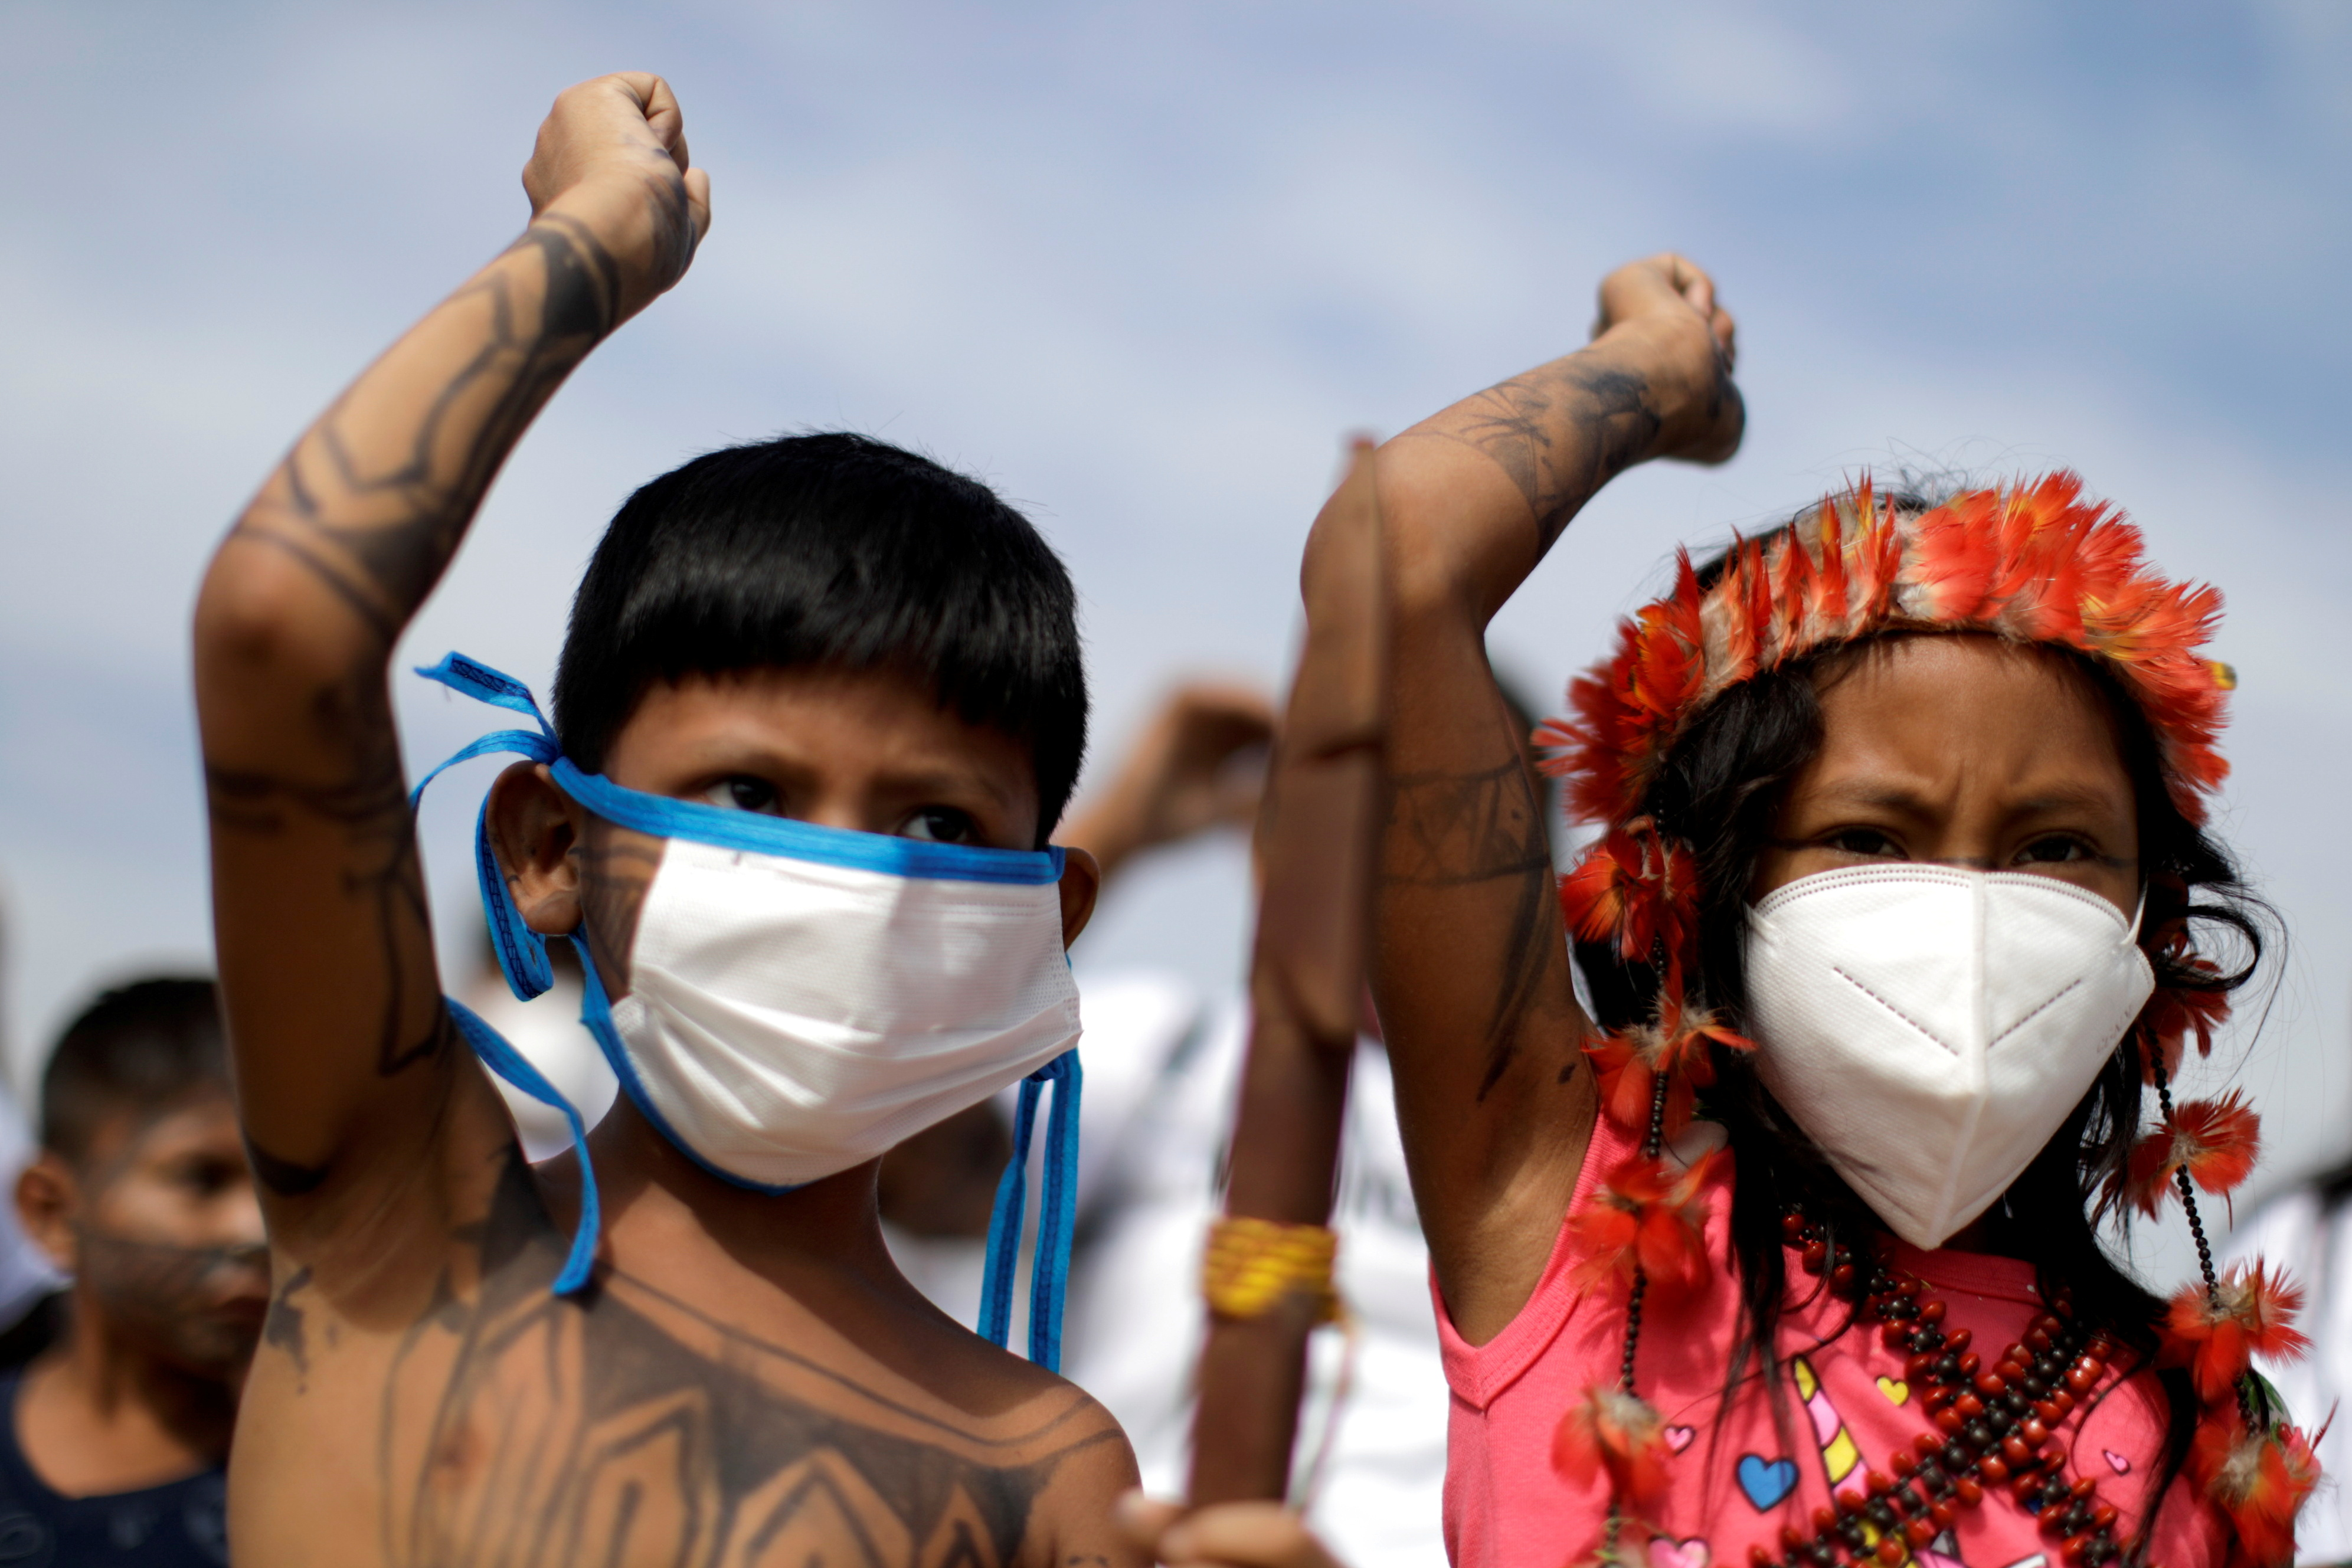 Children from the indigenous Munduruku ethnic group wearing protective face masks take part in a protest in favor of mining and against the entry of NGOs in indigenous lands in Brasilia, Brazil April 20, 2021. REUTERS/Ueslei Marcelino/File Photo